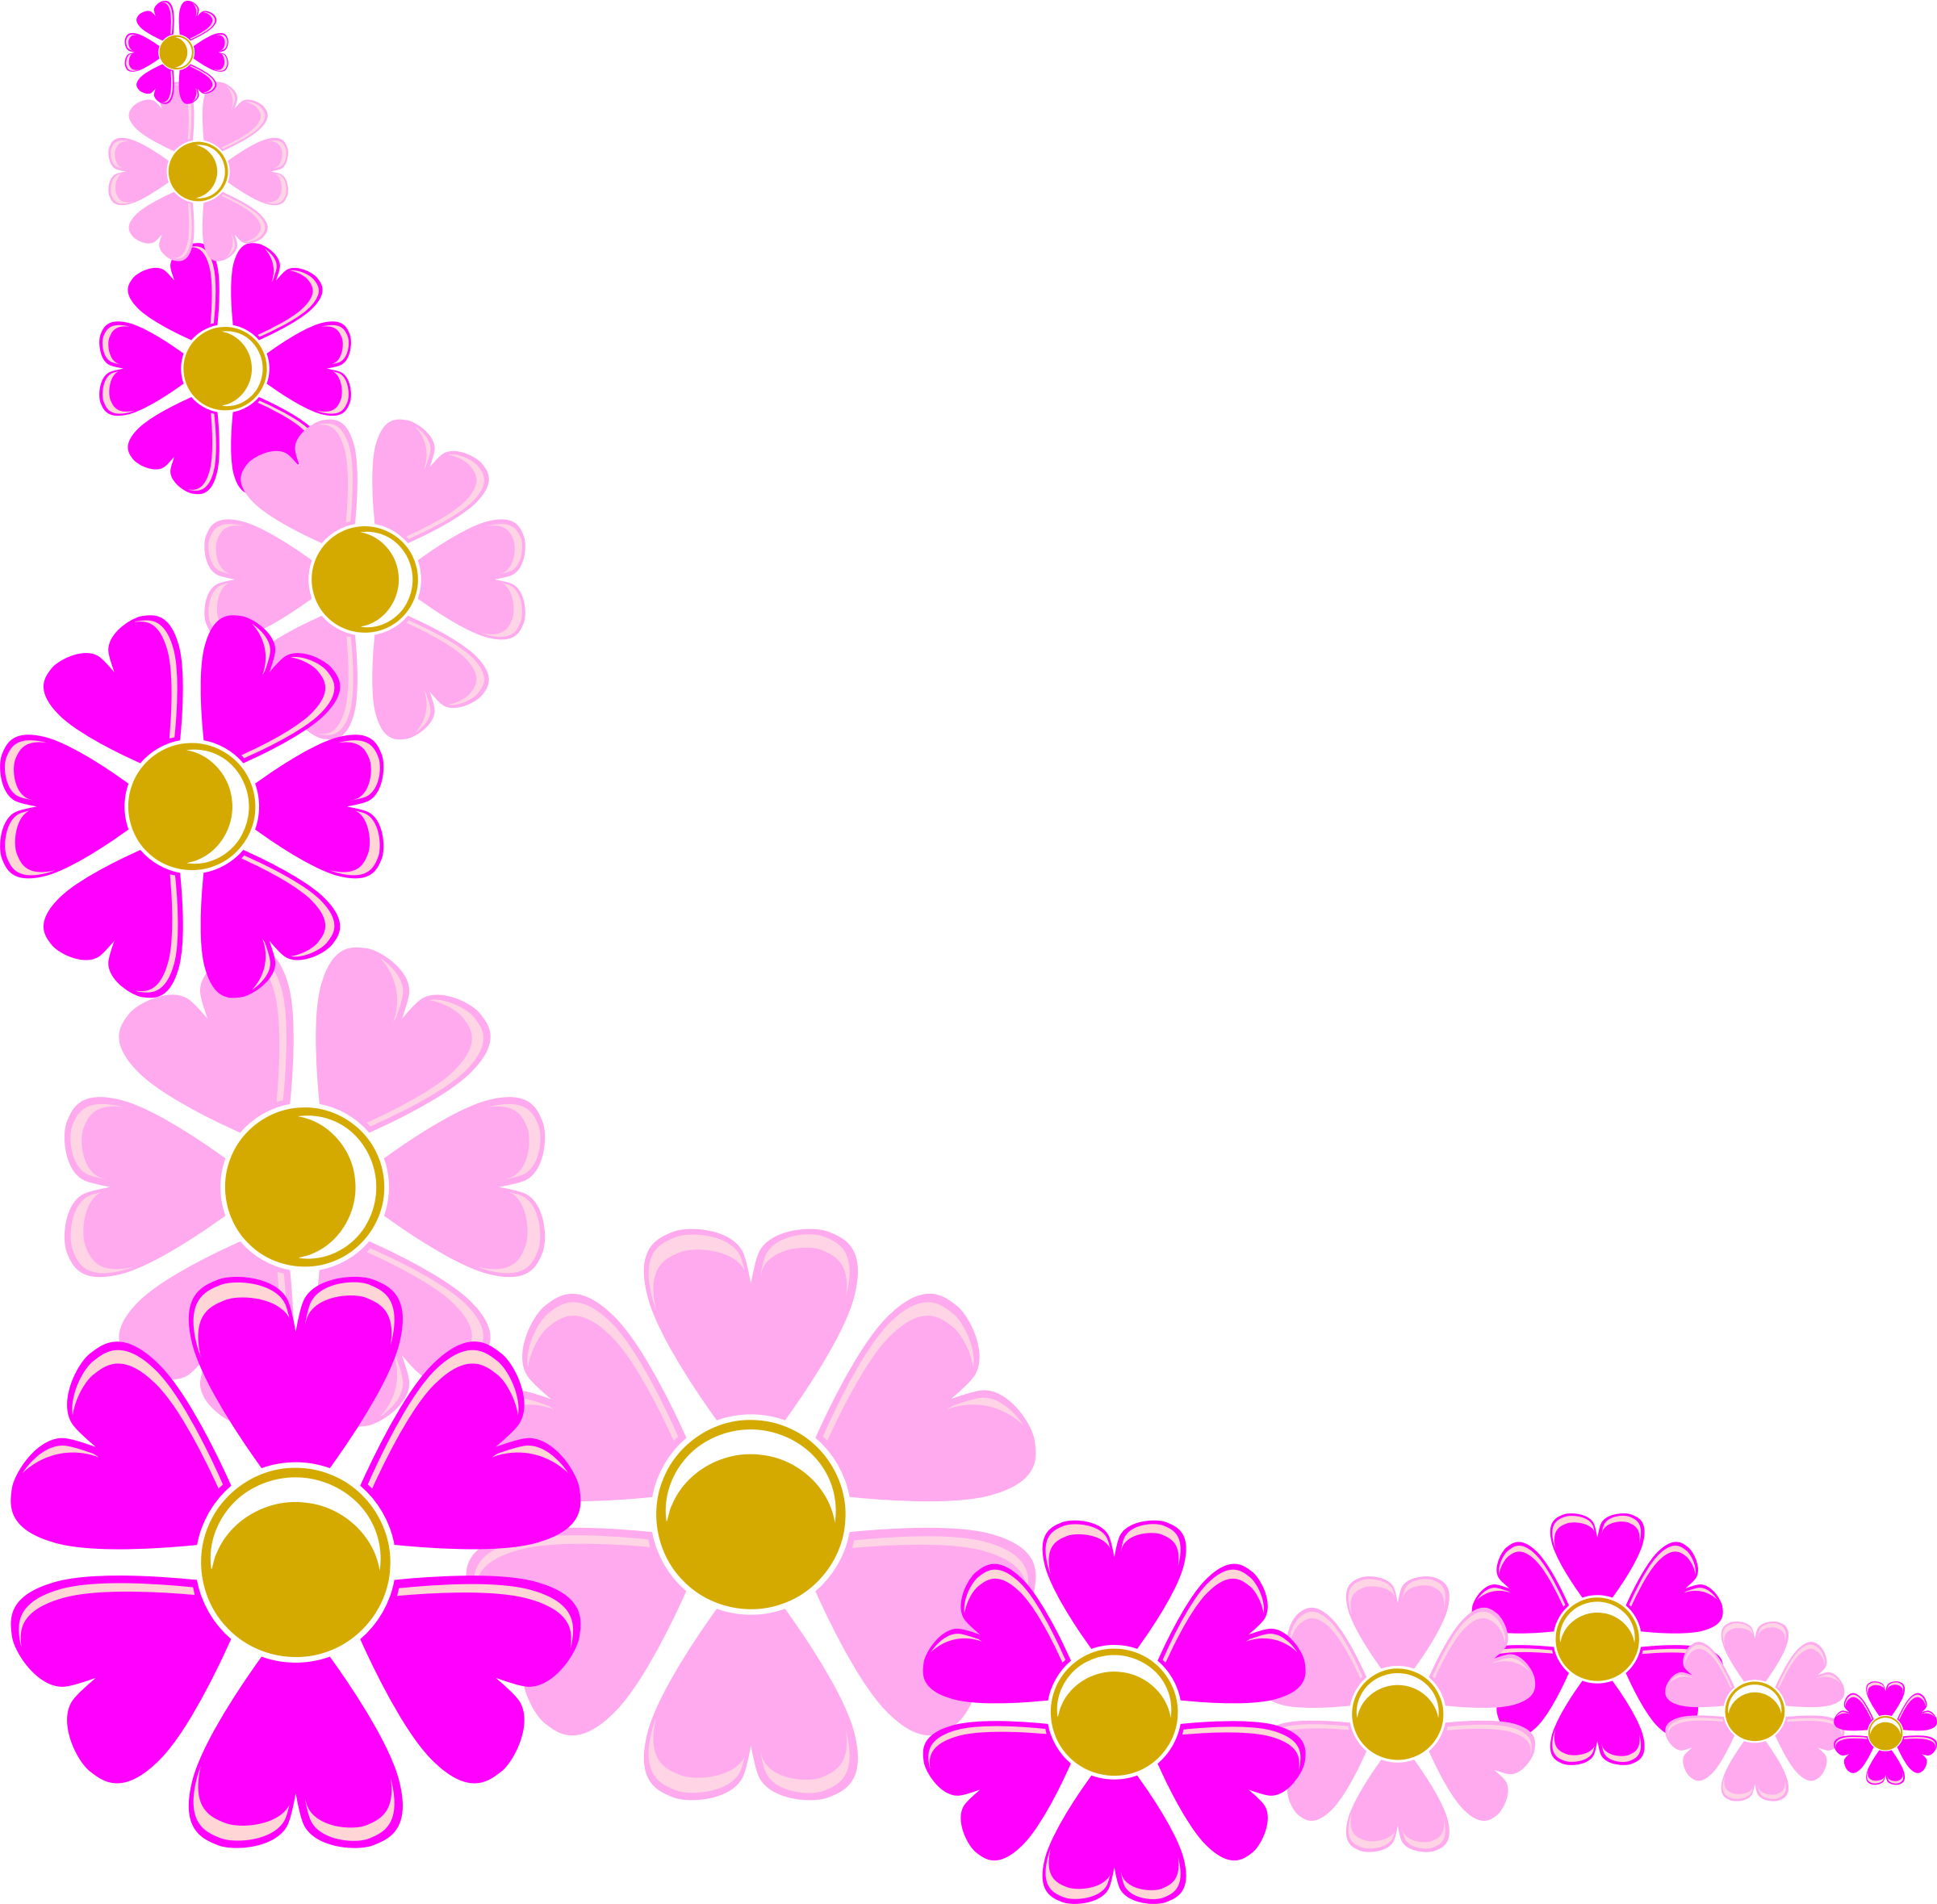 Floral corner clipart. Free flower cliparts download